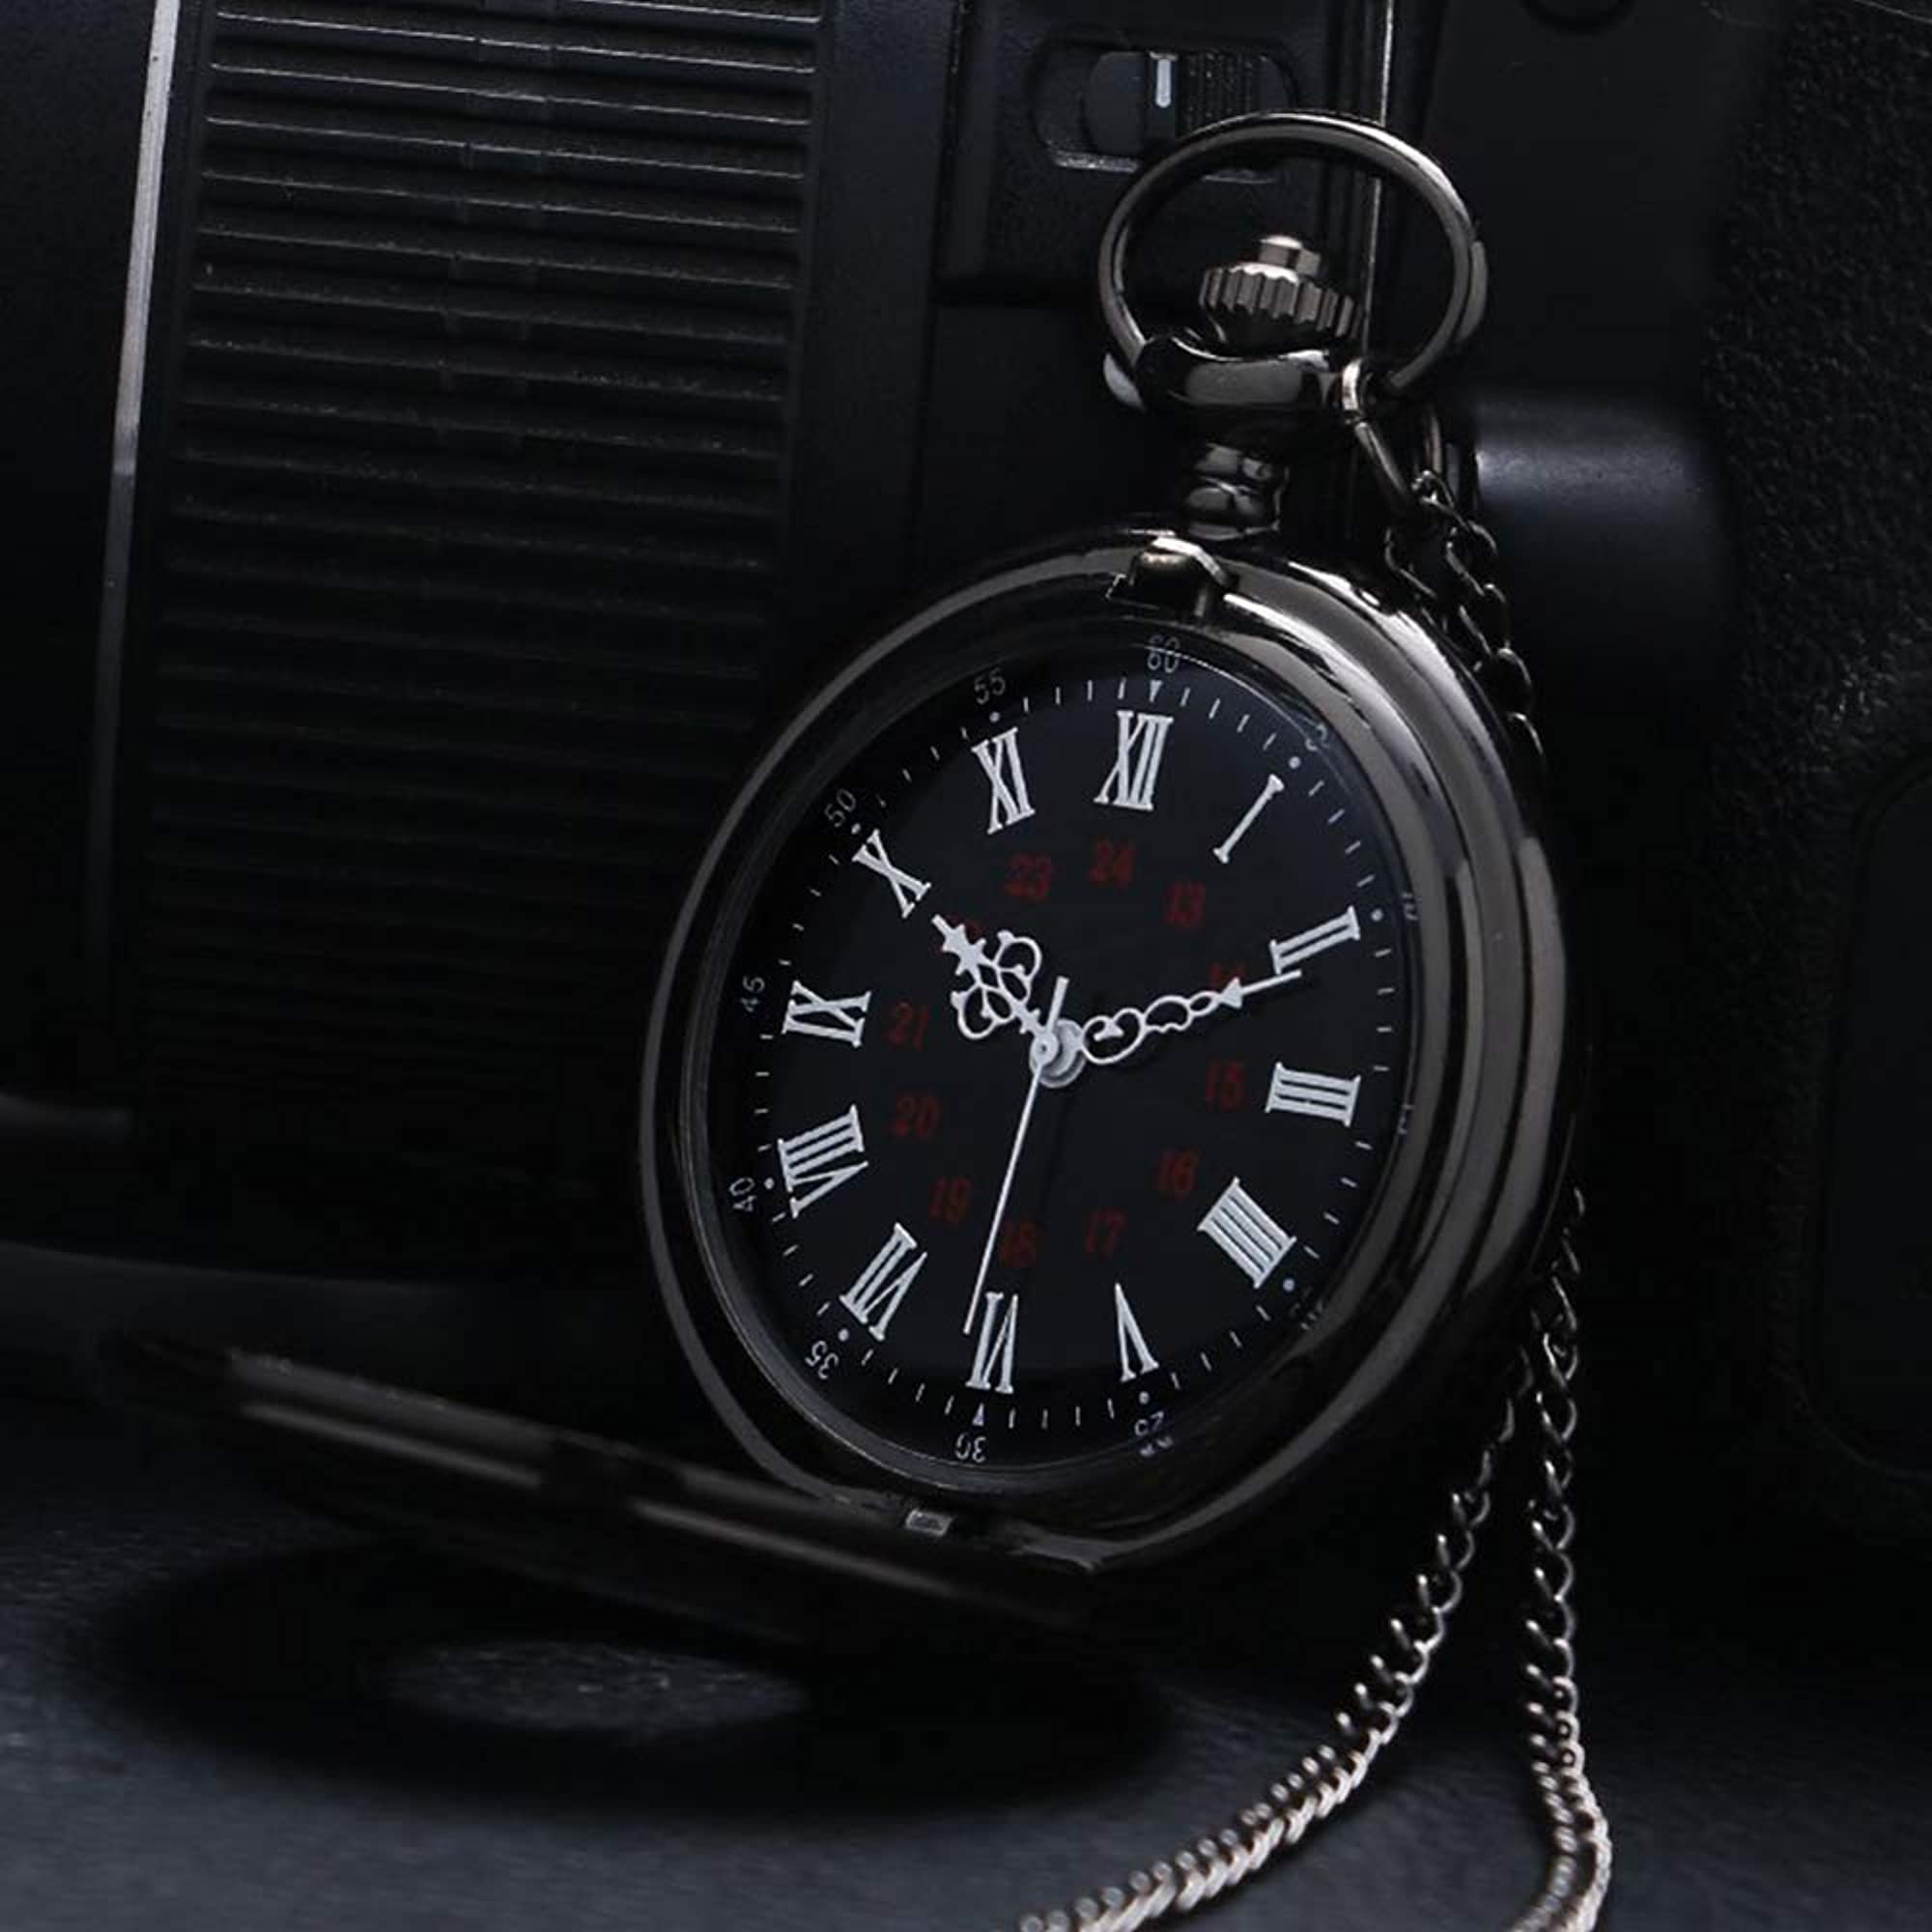 Stainless Steel Vintage Pocket Analog Watch